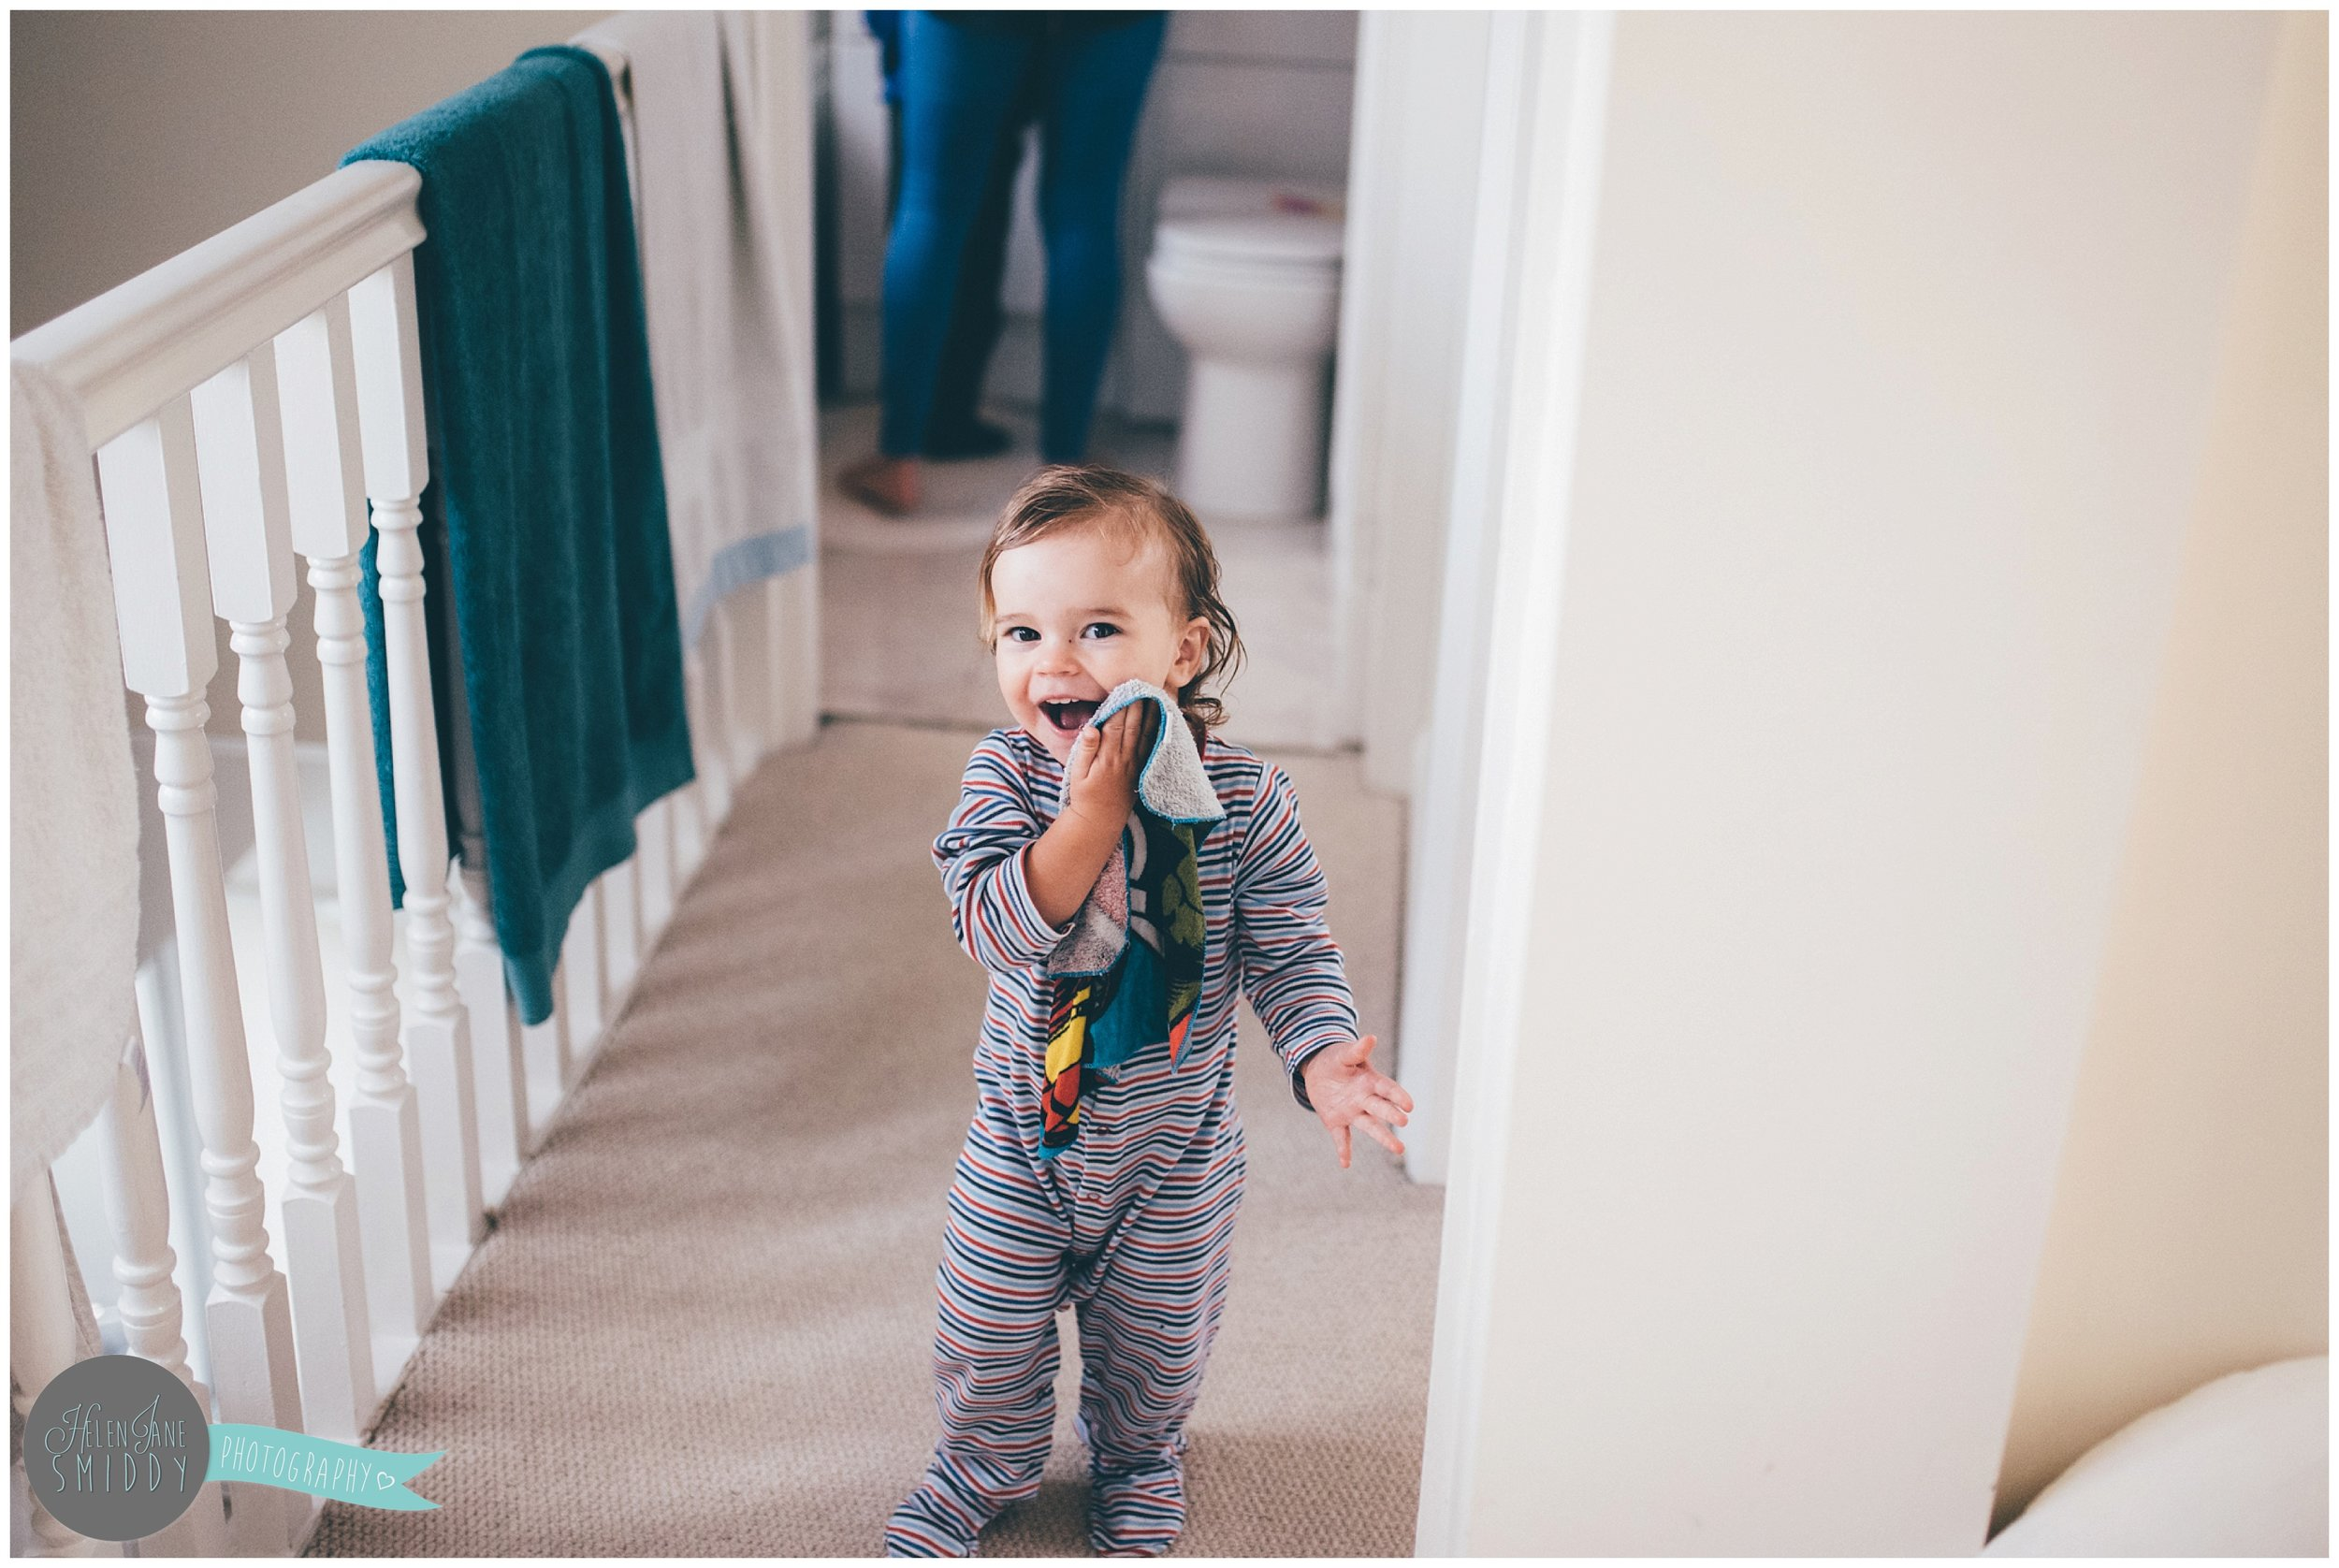 Zoe walks around during their Day In The Life photoshoot in her pjs.